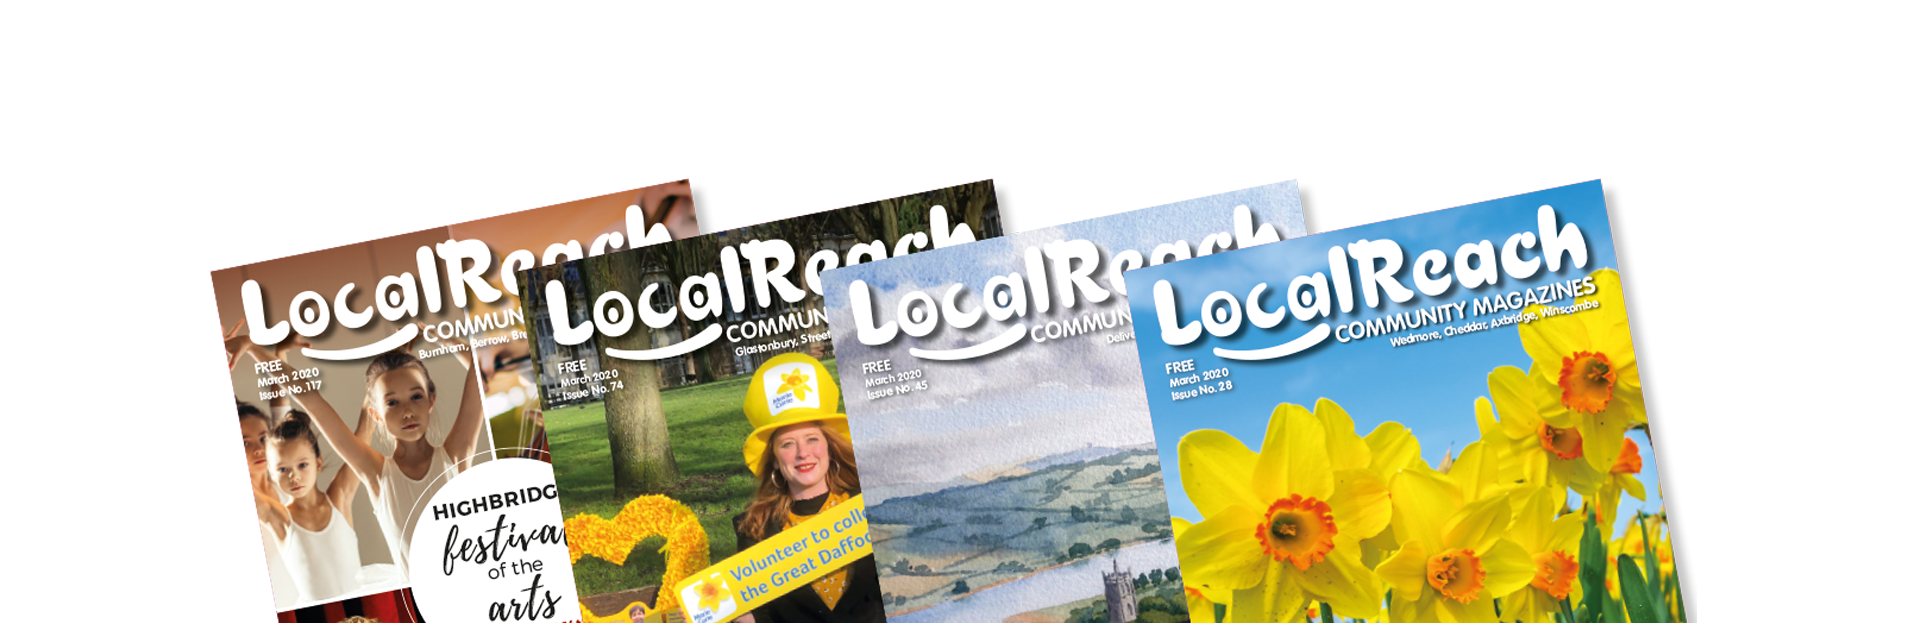 LocalReach Community Magazines Somerset - Local news, events and advertising